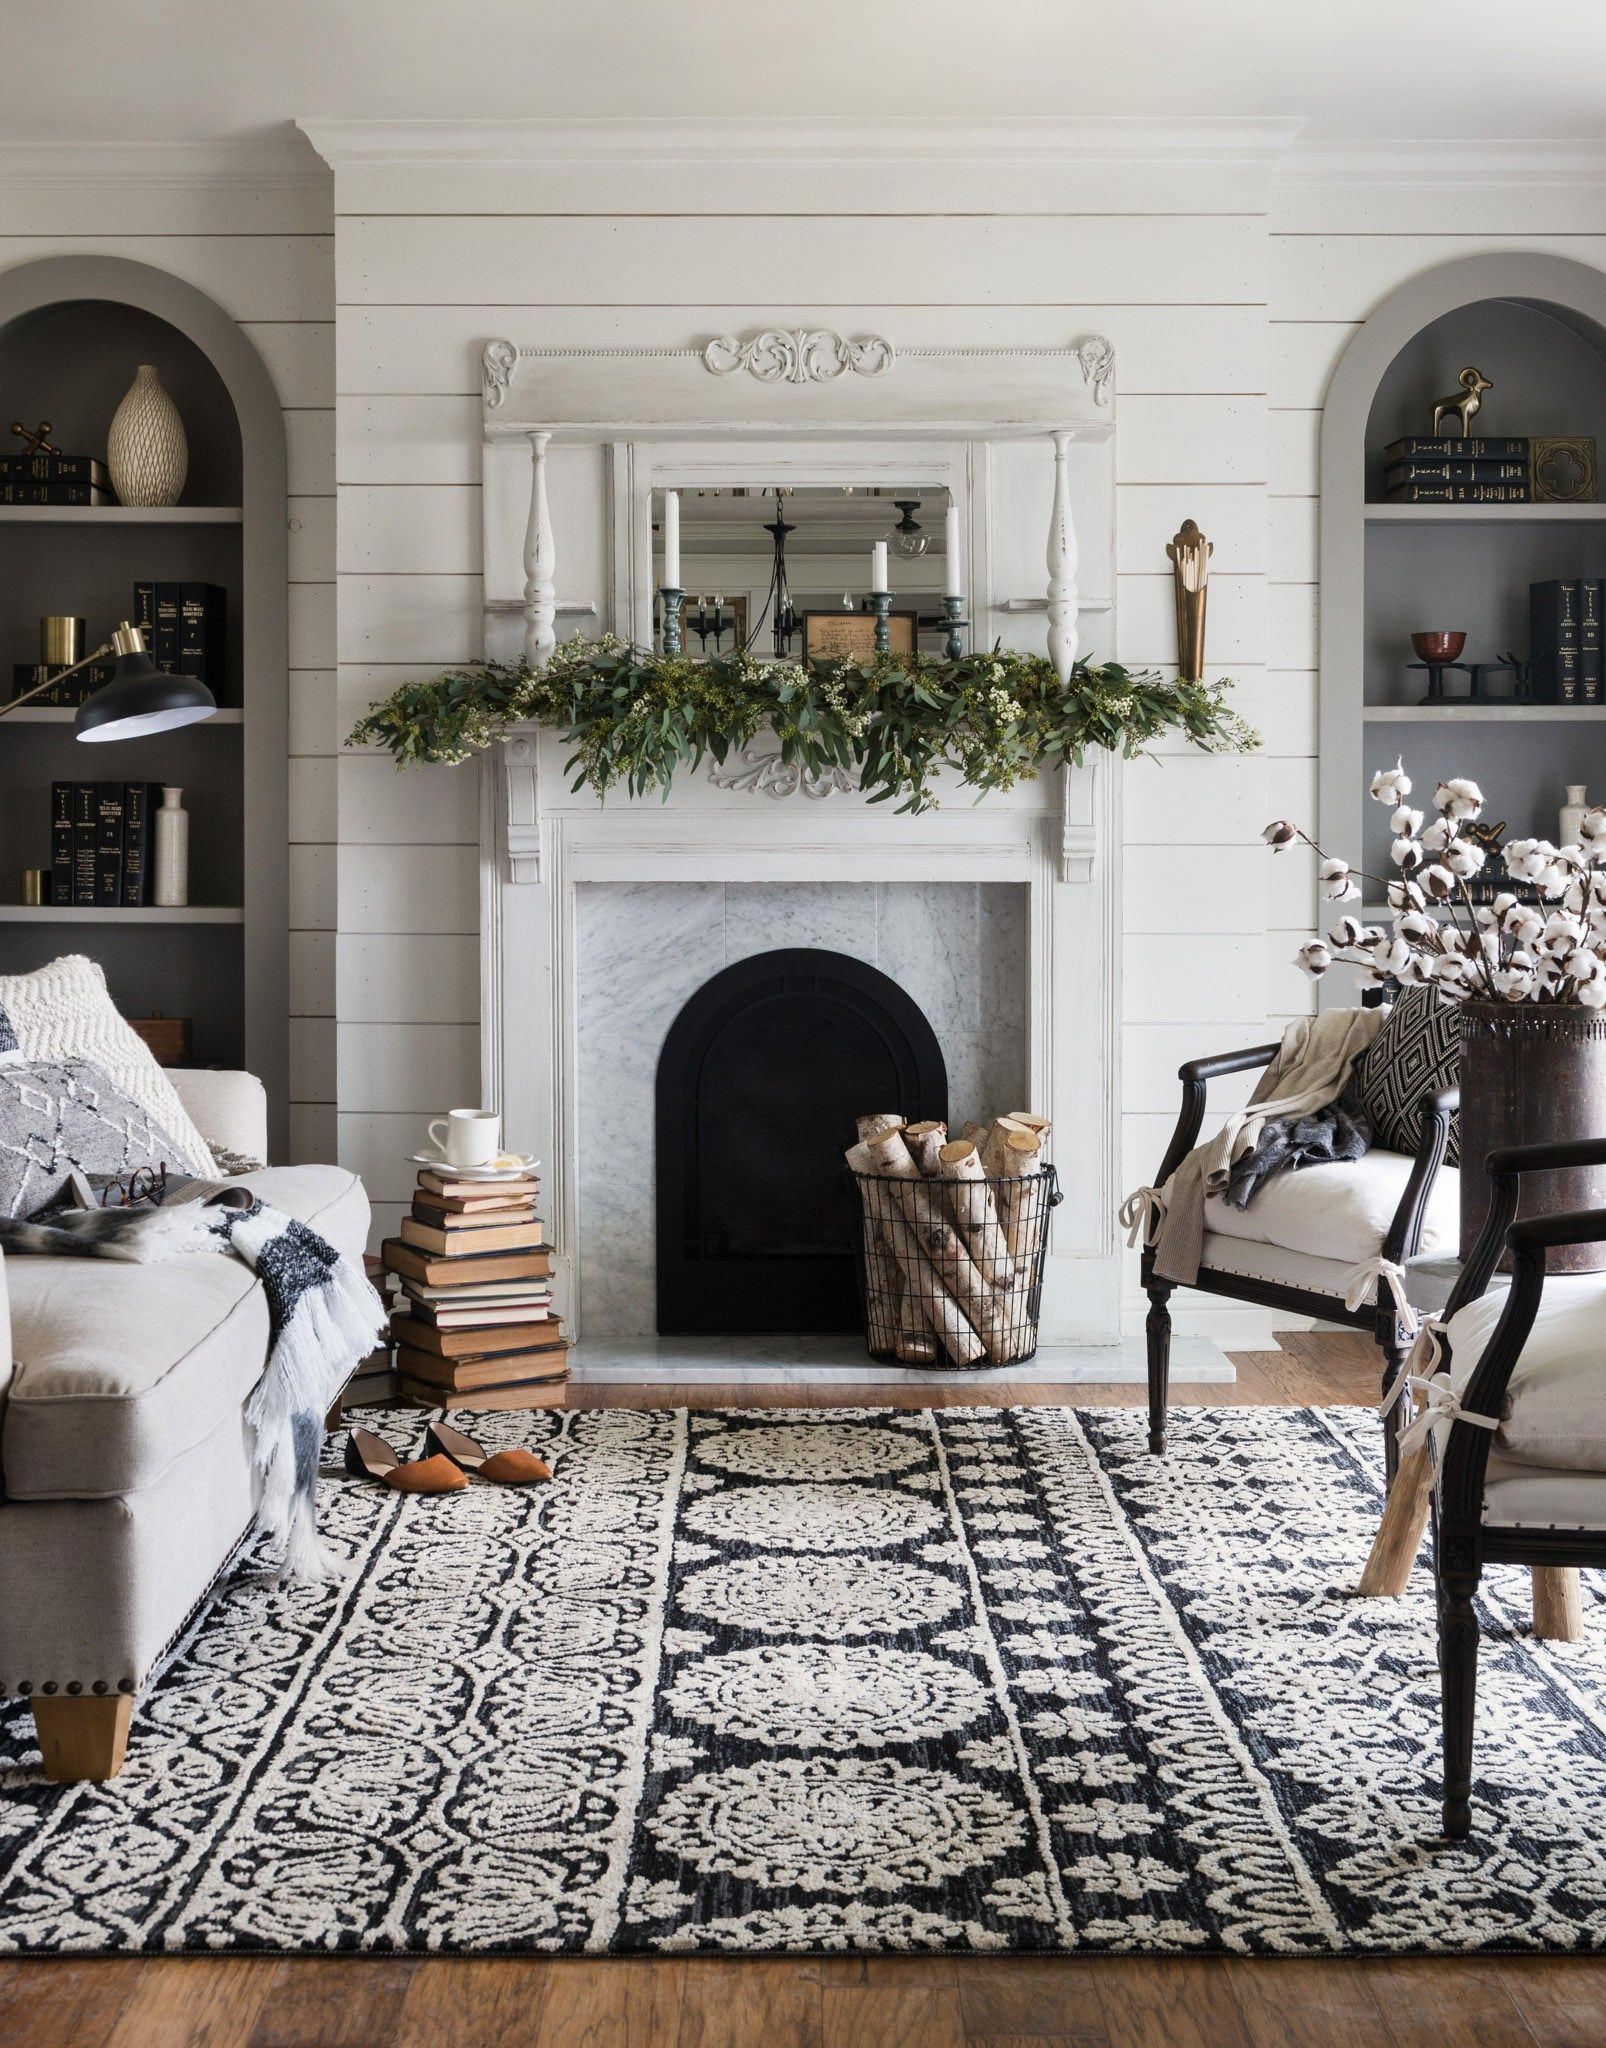 Magnolia Home Rugs by Joanna Gaines Are Now Available at Furniture ...